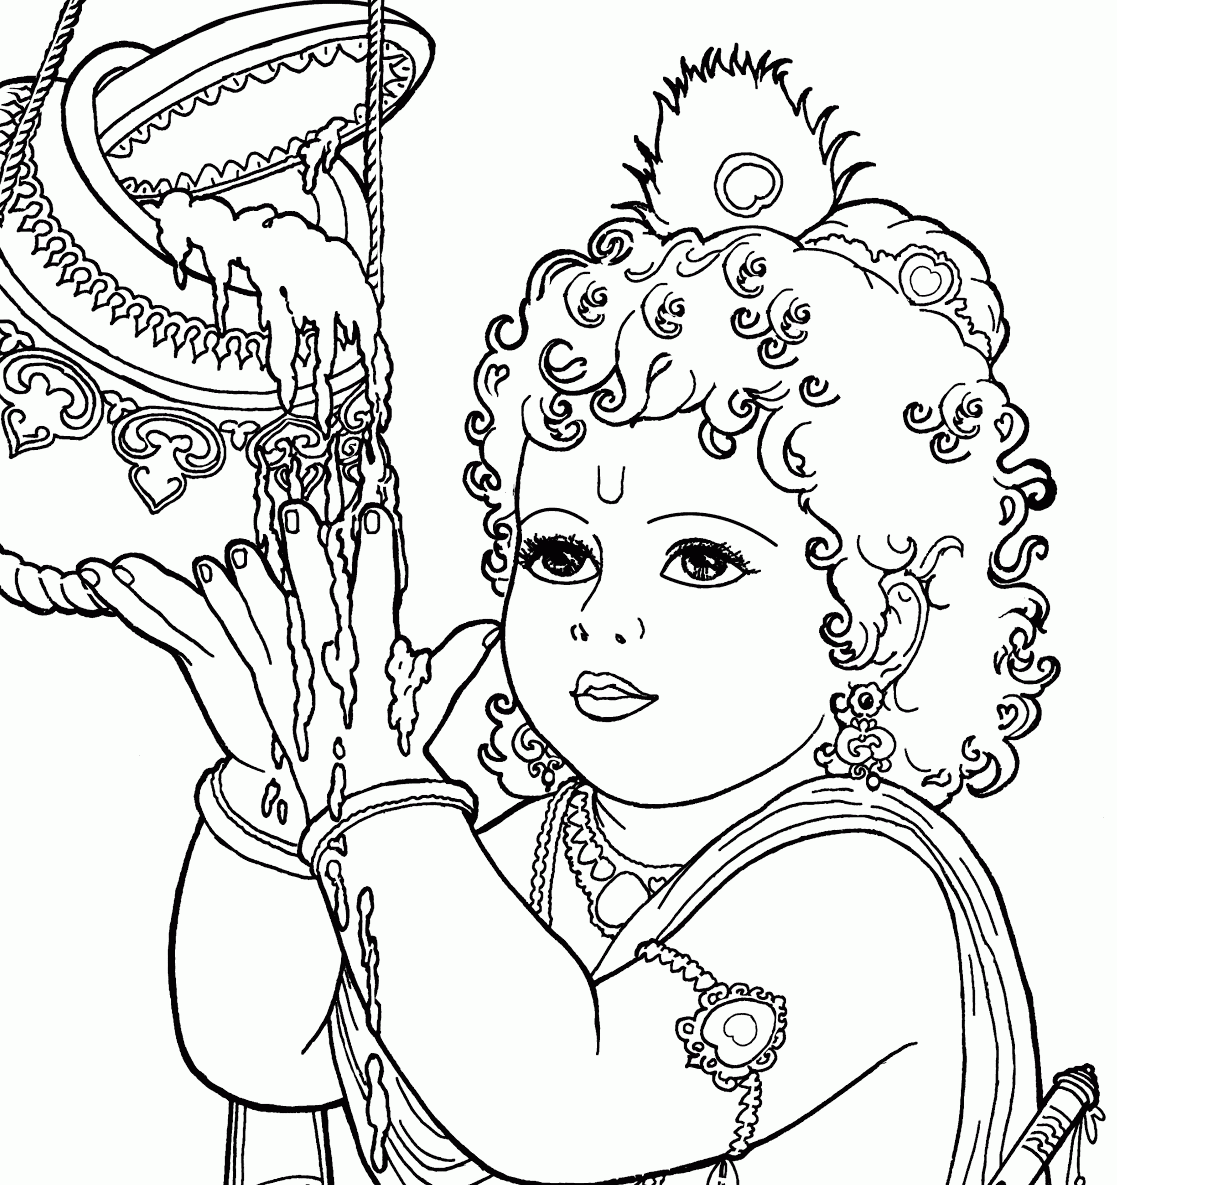 krishna pages for coloring - photo#18